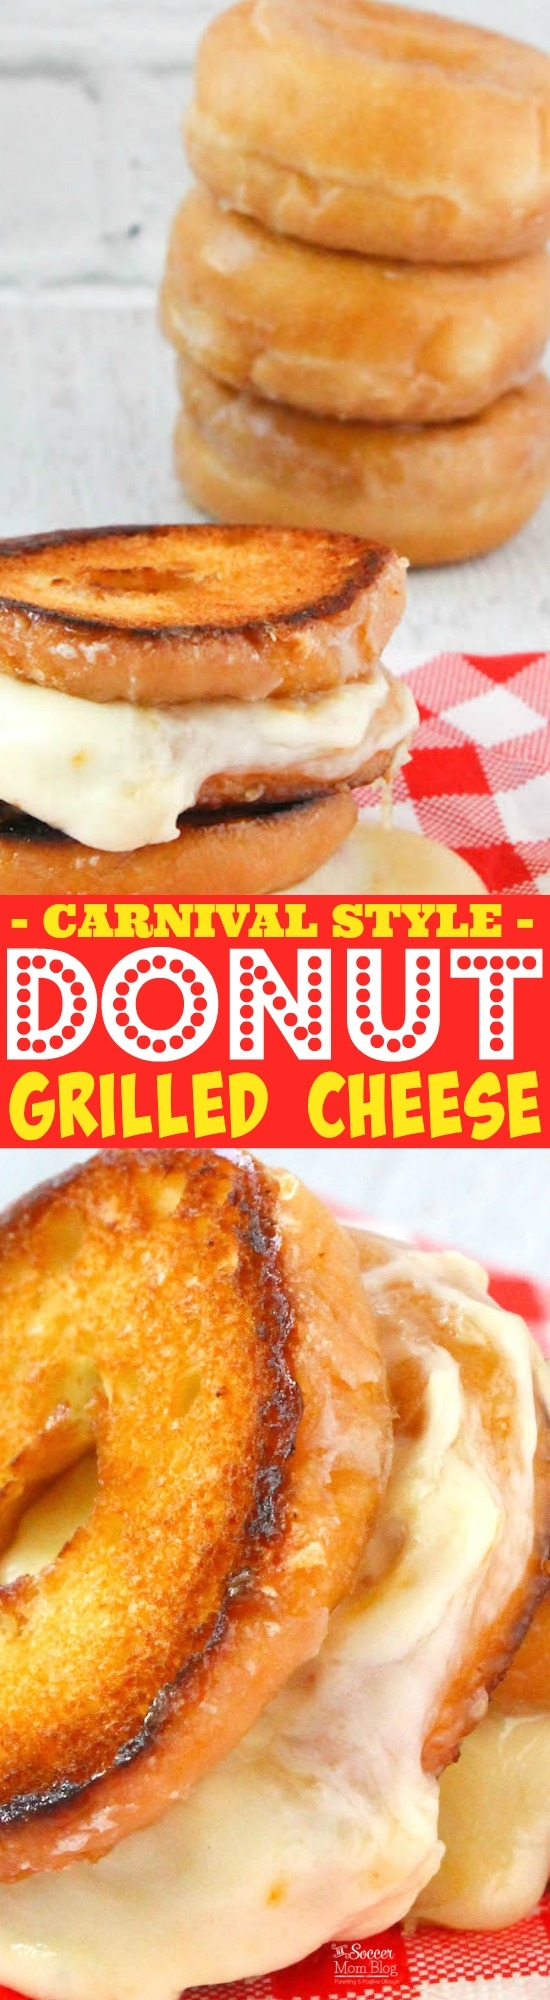 Just like you'd find at the state fair, this Donut Grilled Cheese will send you away into carb-y, cheesy bliss! Dessert, lunch, snack, anytime!